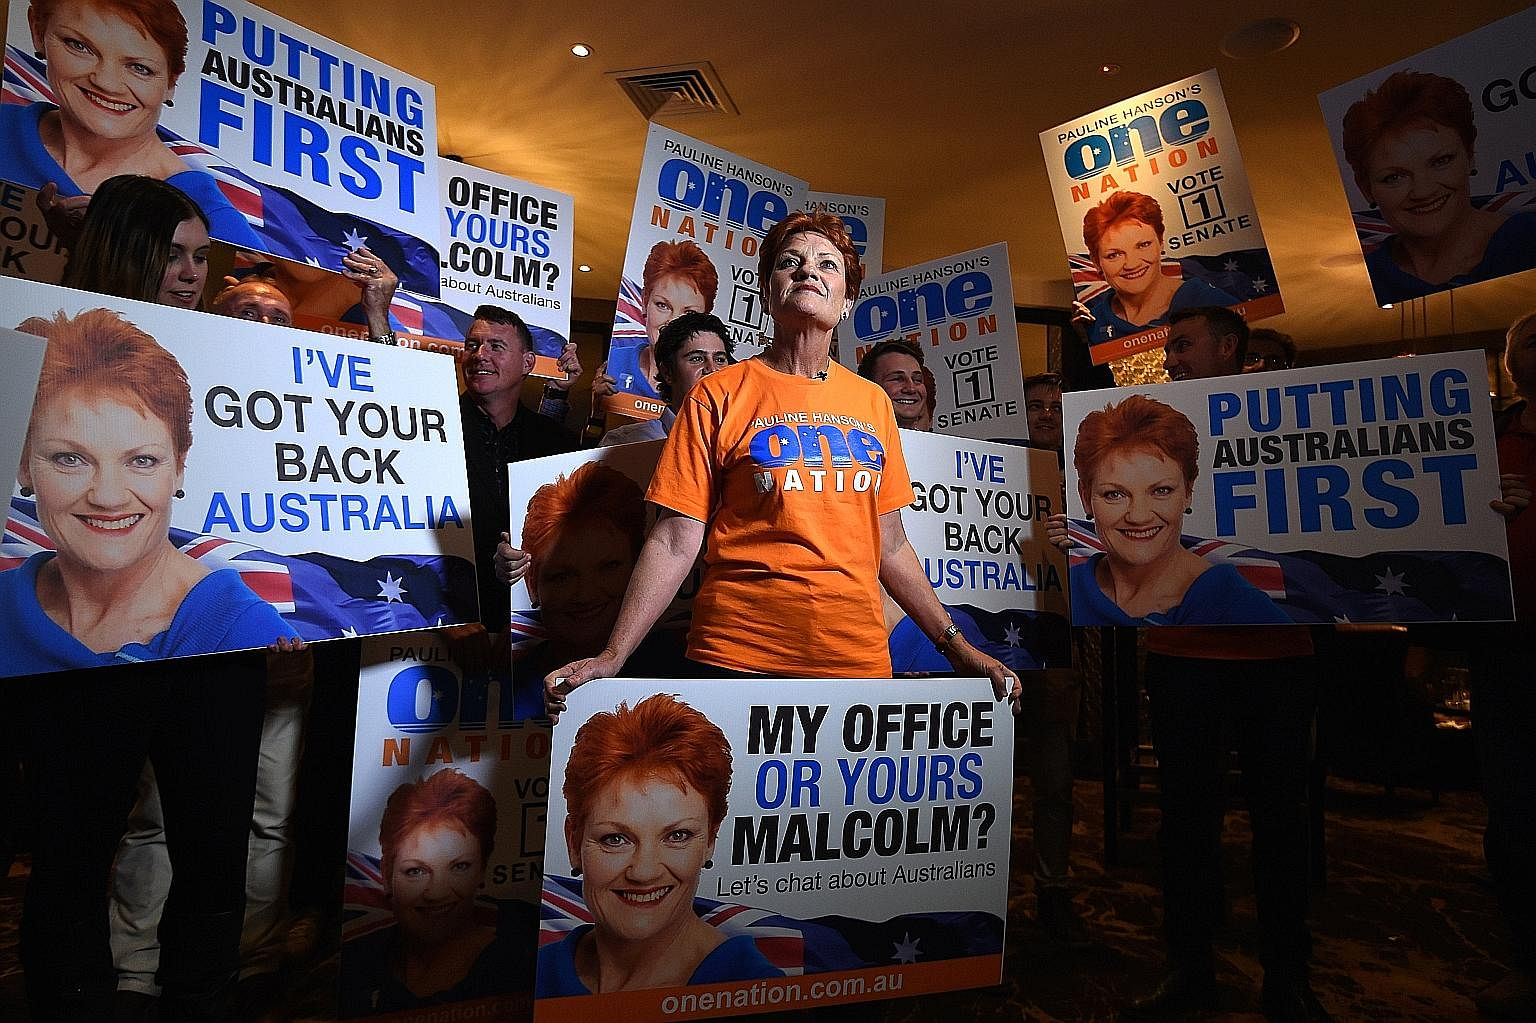 Ms Hanson's battles with the political establishment and her determination to win may have garnered her both sympathy and support among the wider Australian community. Now she is on the brink of becoming a major force in national politics